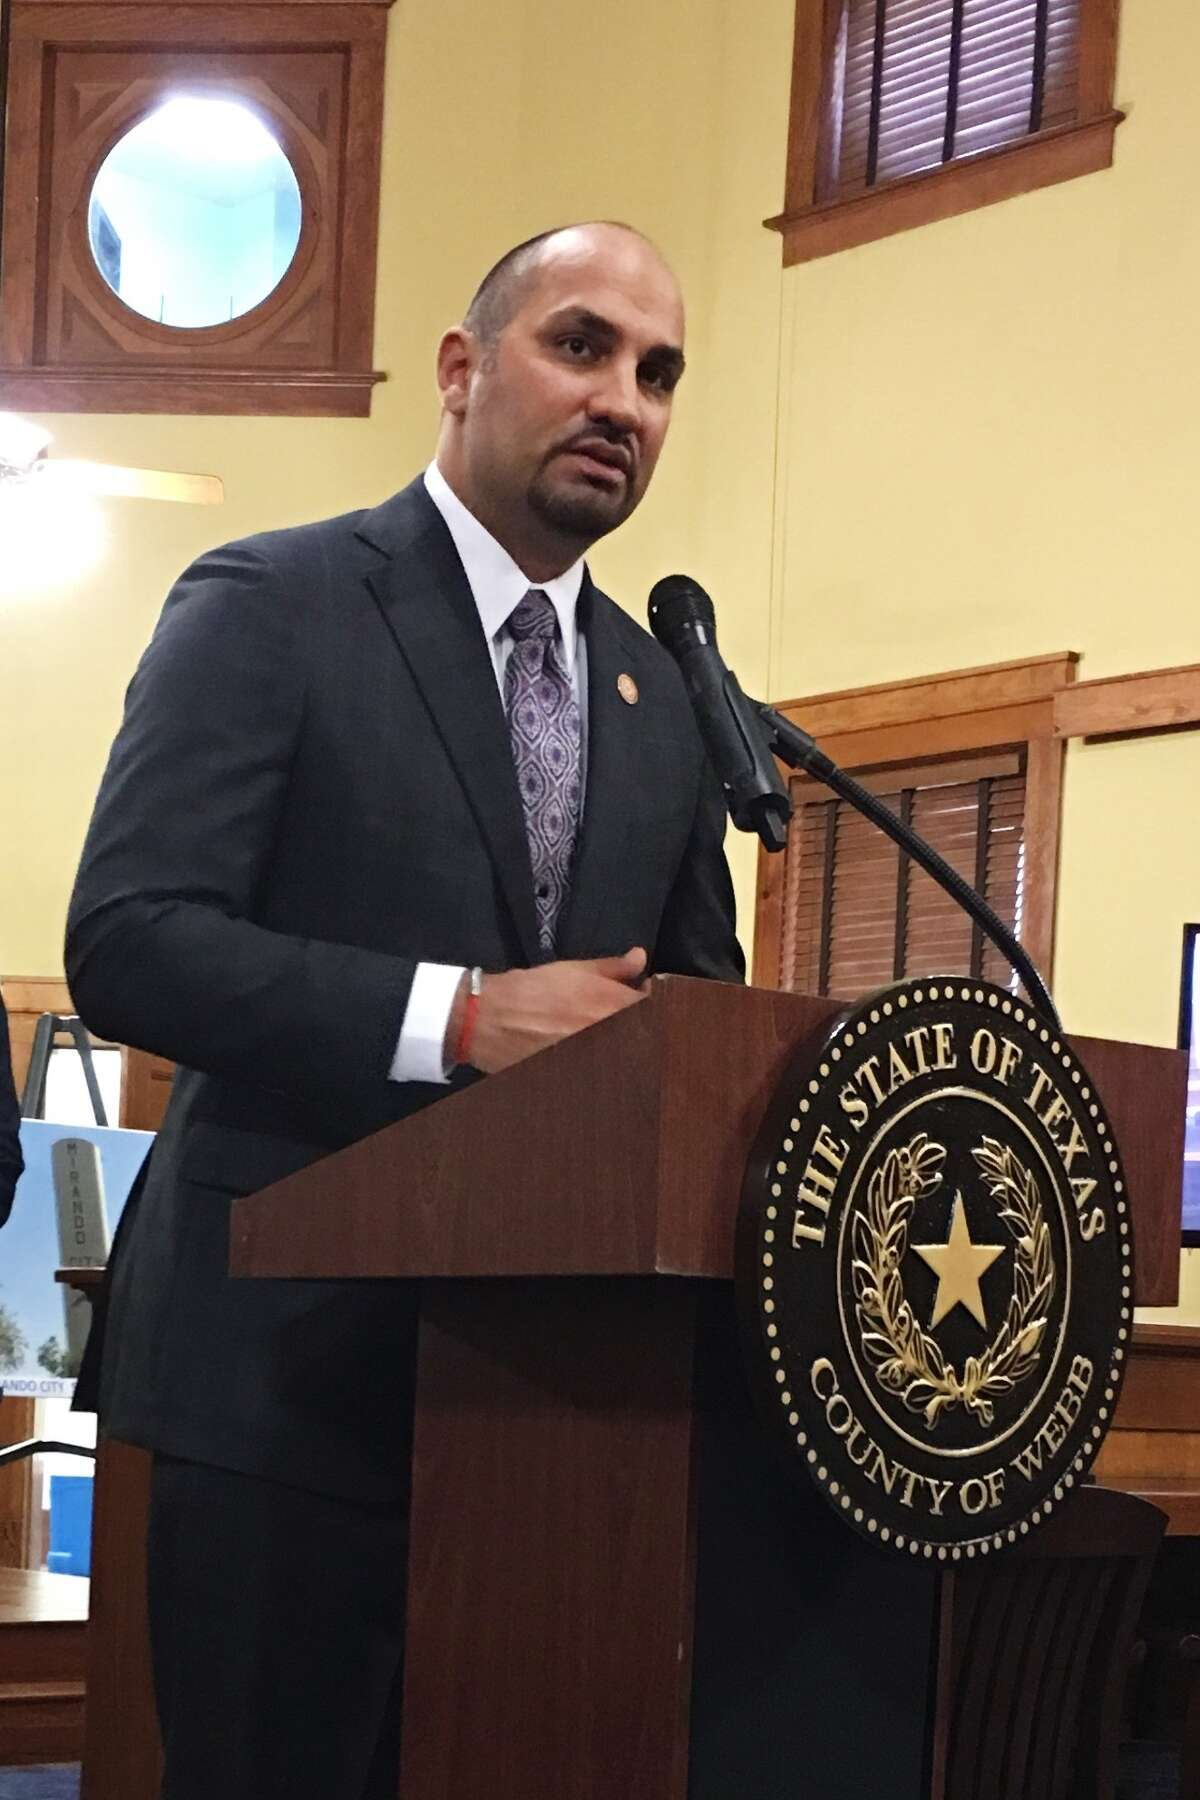 Webb County Judge Tano Tijerina announces details of a $500,000 grant for water supply improvements during a press conference at the Webb County Courthouse.